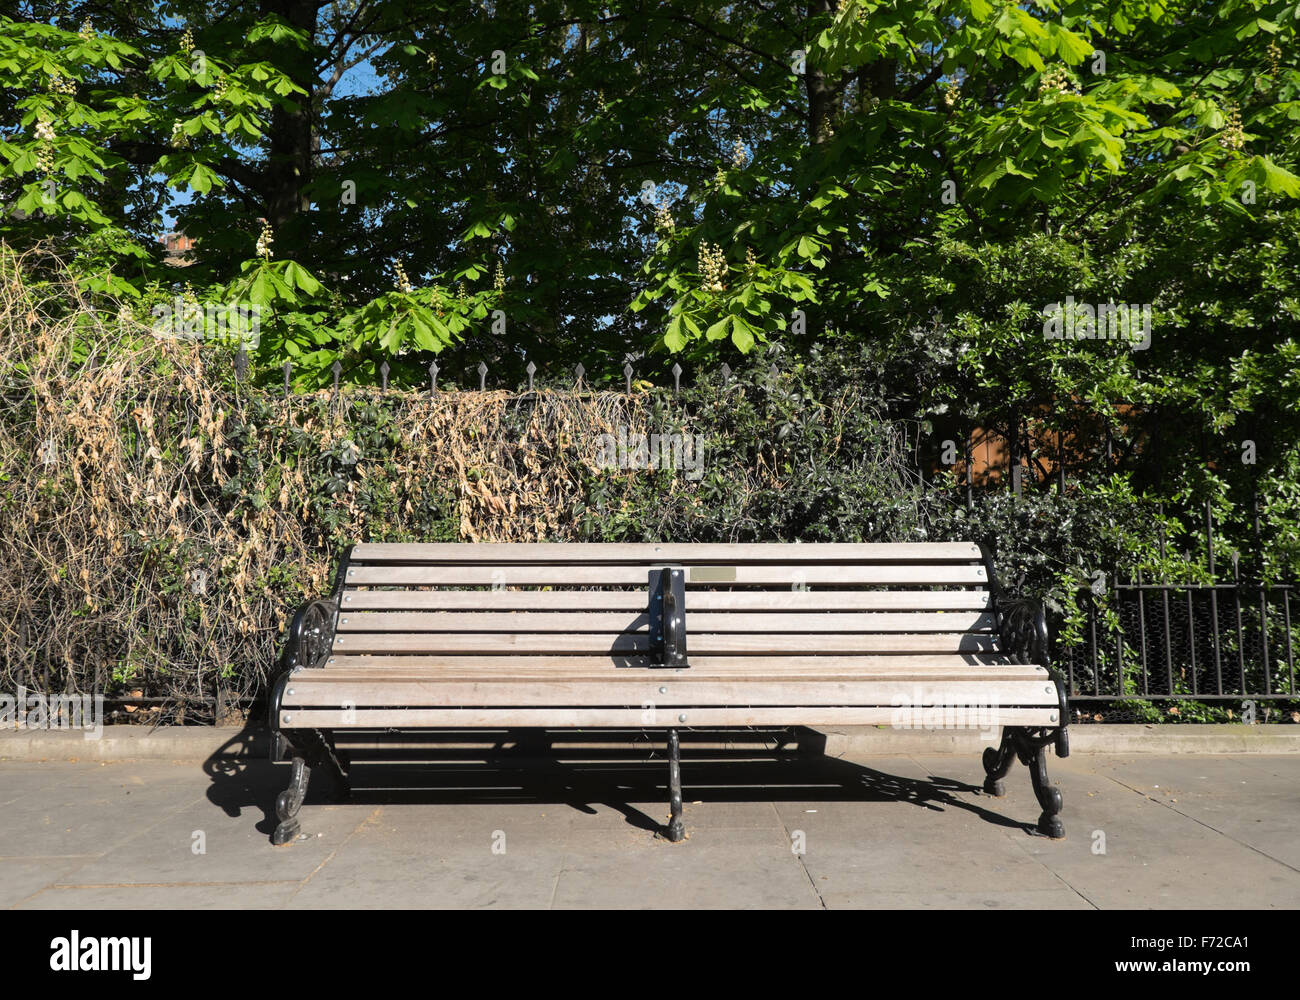 Street furniture in Brompton Road,Kensington,London Stock Photo